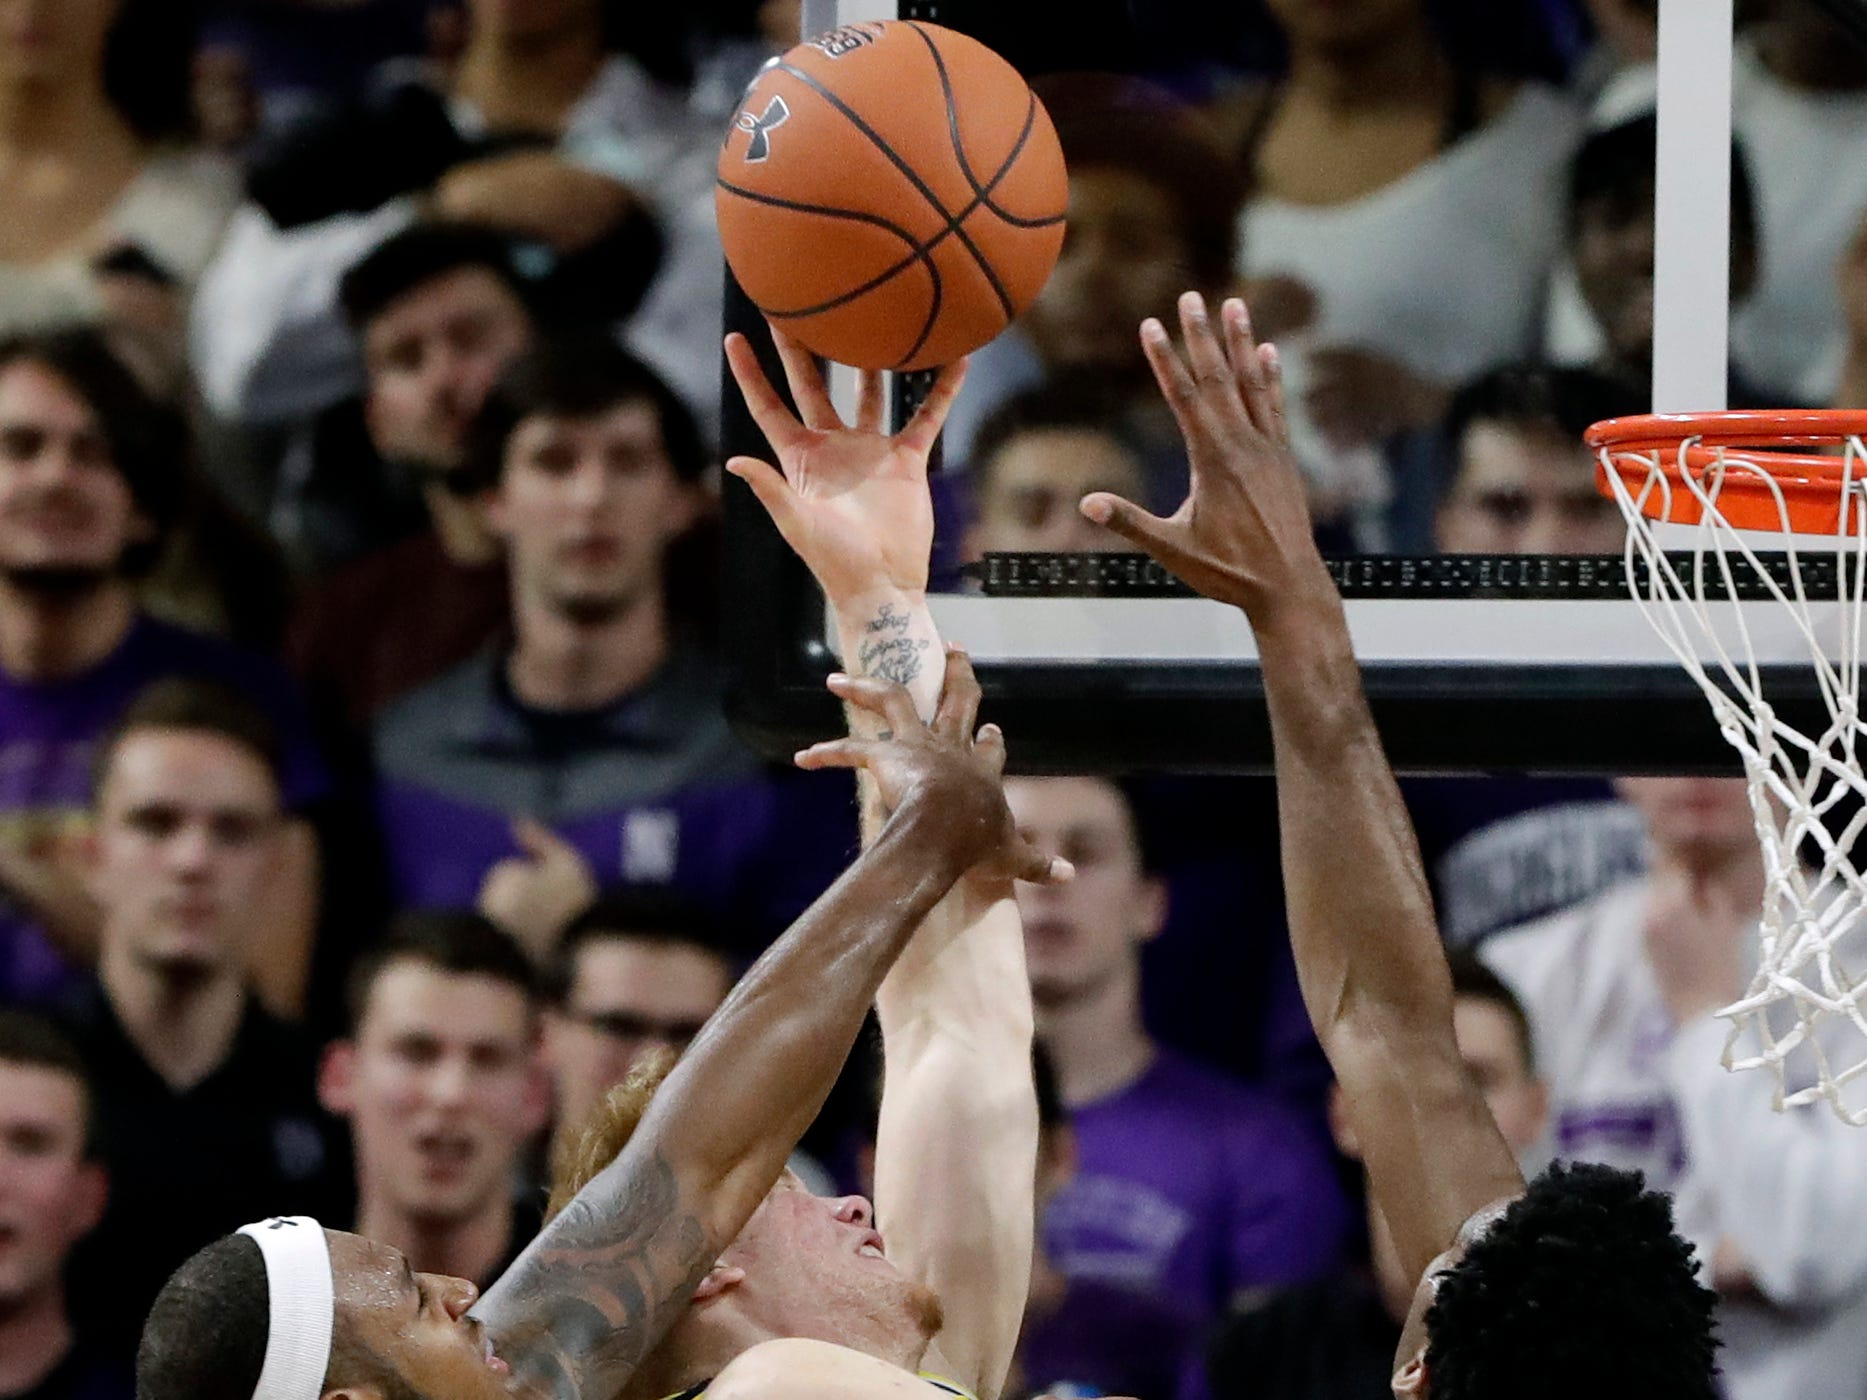 Michigan forward Ignas Brazdeikis, center, shoots against Northwestern center Dererk Pardon, left, and forward Vic Law during the second half of U-M's 62-60 win on Tuesday, Dec. 4, 2018, in Evanston, Ill.